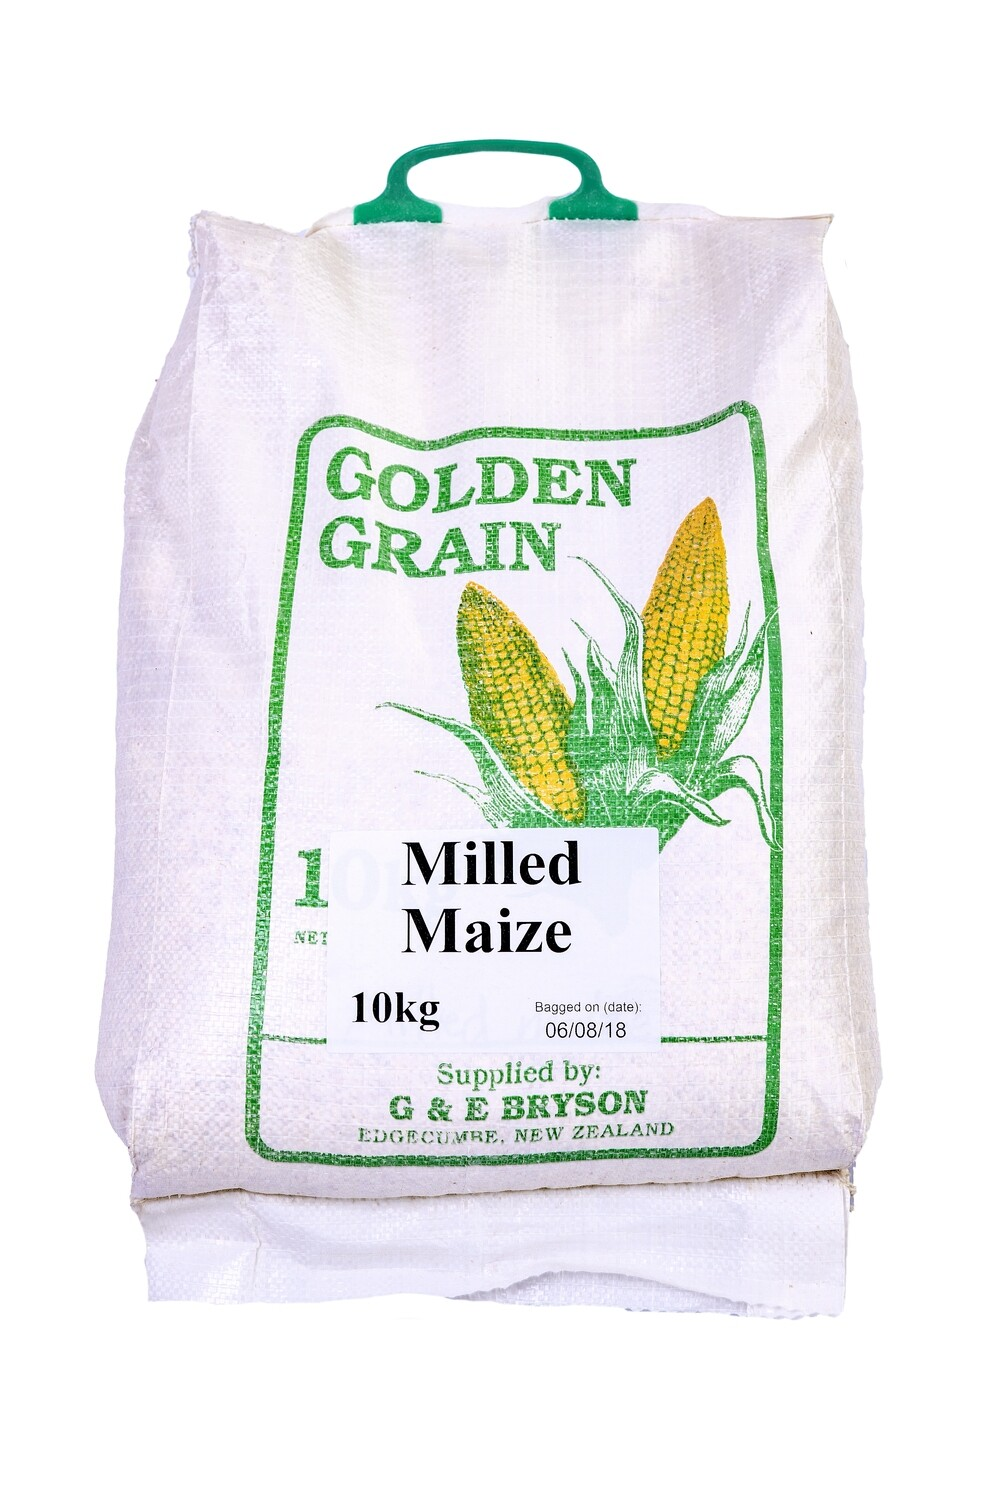 Milled Maize - 10kg